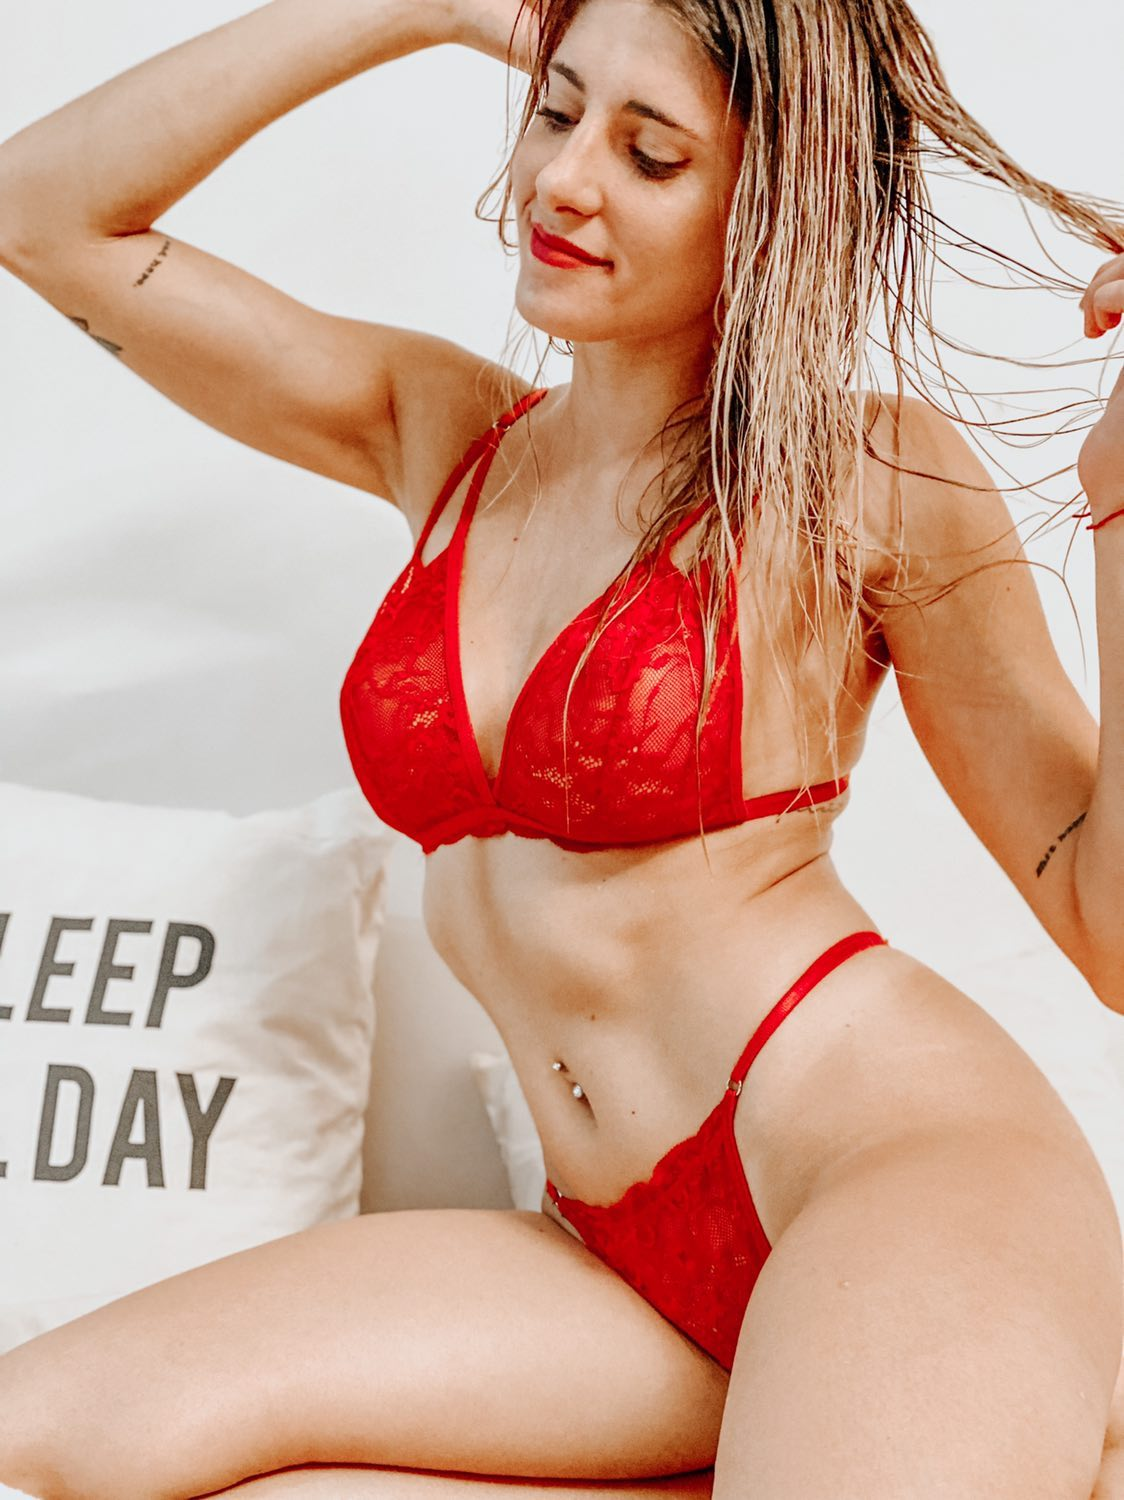 Beautiful Argentinian model Camila Sol Botti @csbotti having fun in a photo session wearing red lace lingerie sitting with her arms up smiling showing her hot latina body